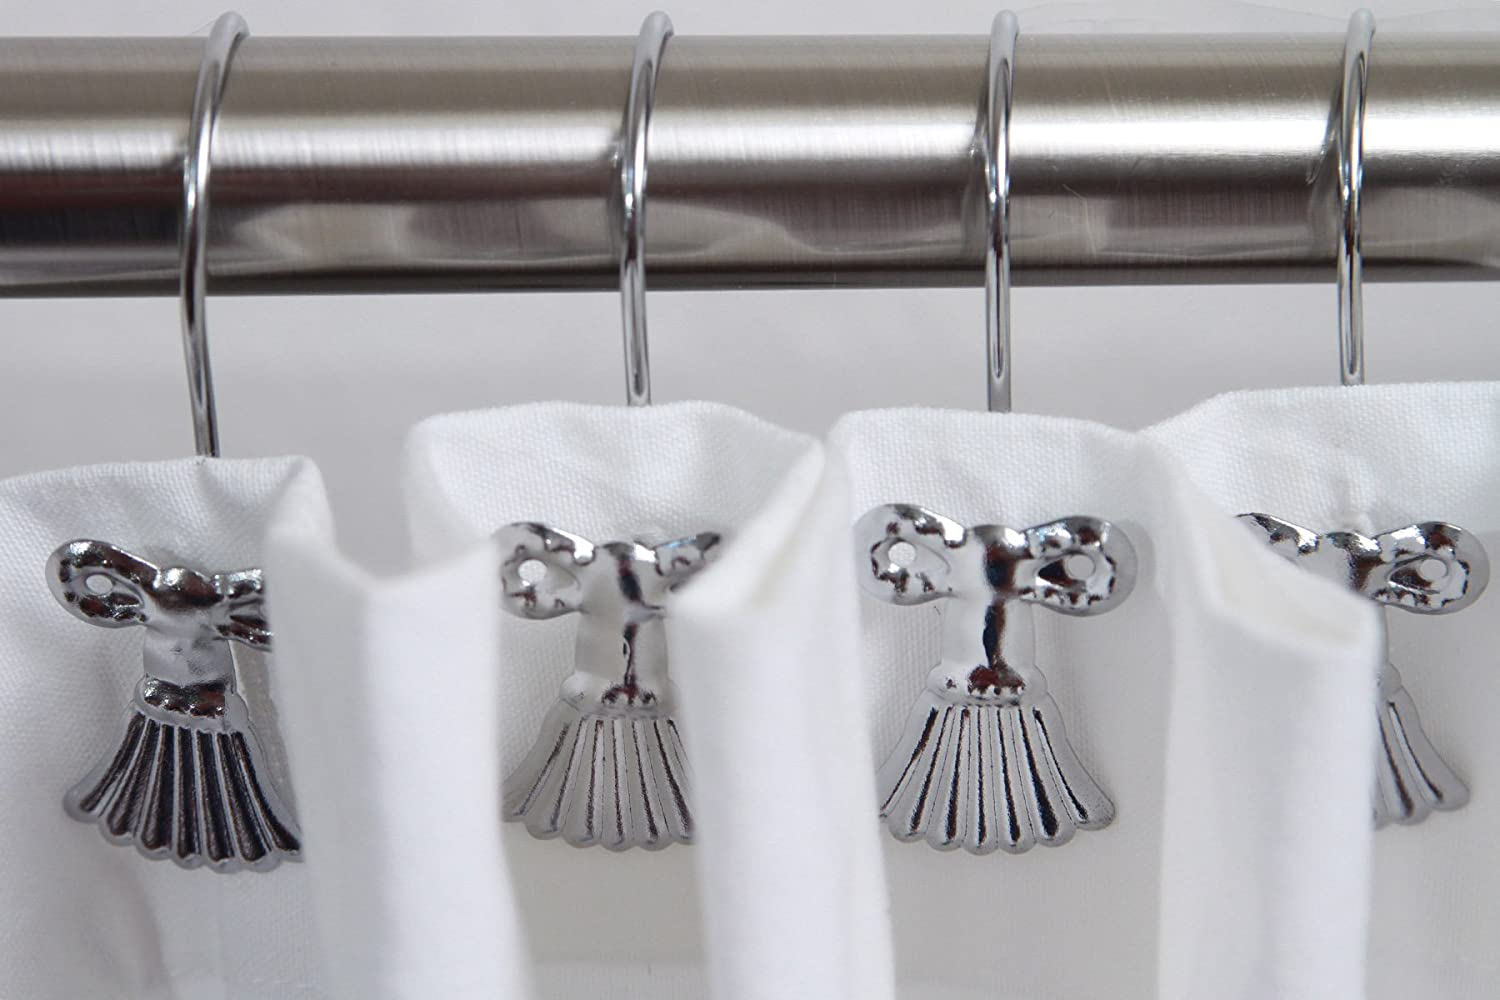 2 Sets Of Tassel Shower Curtain Hooks For The Price ONE Polished Chrome Includes A 1